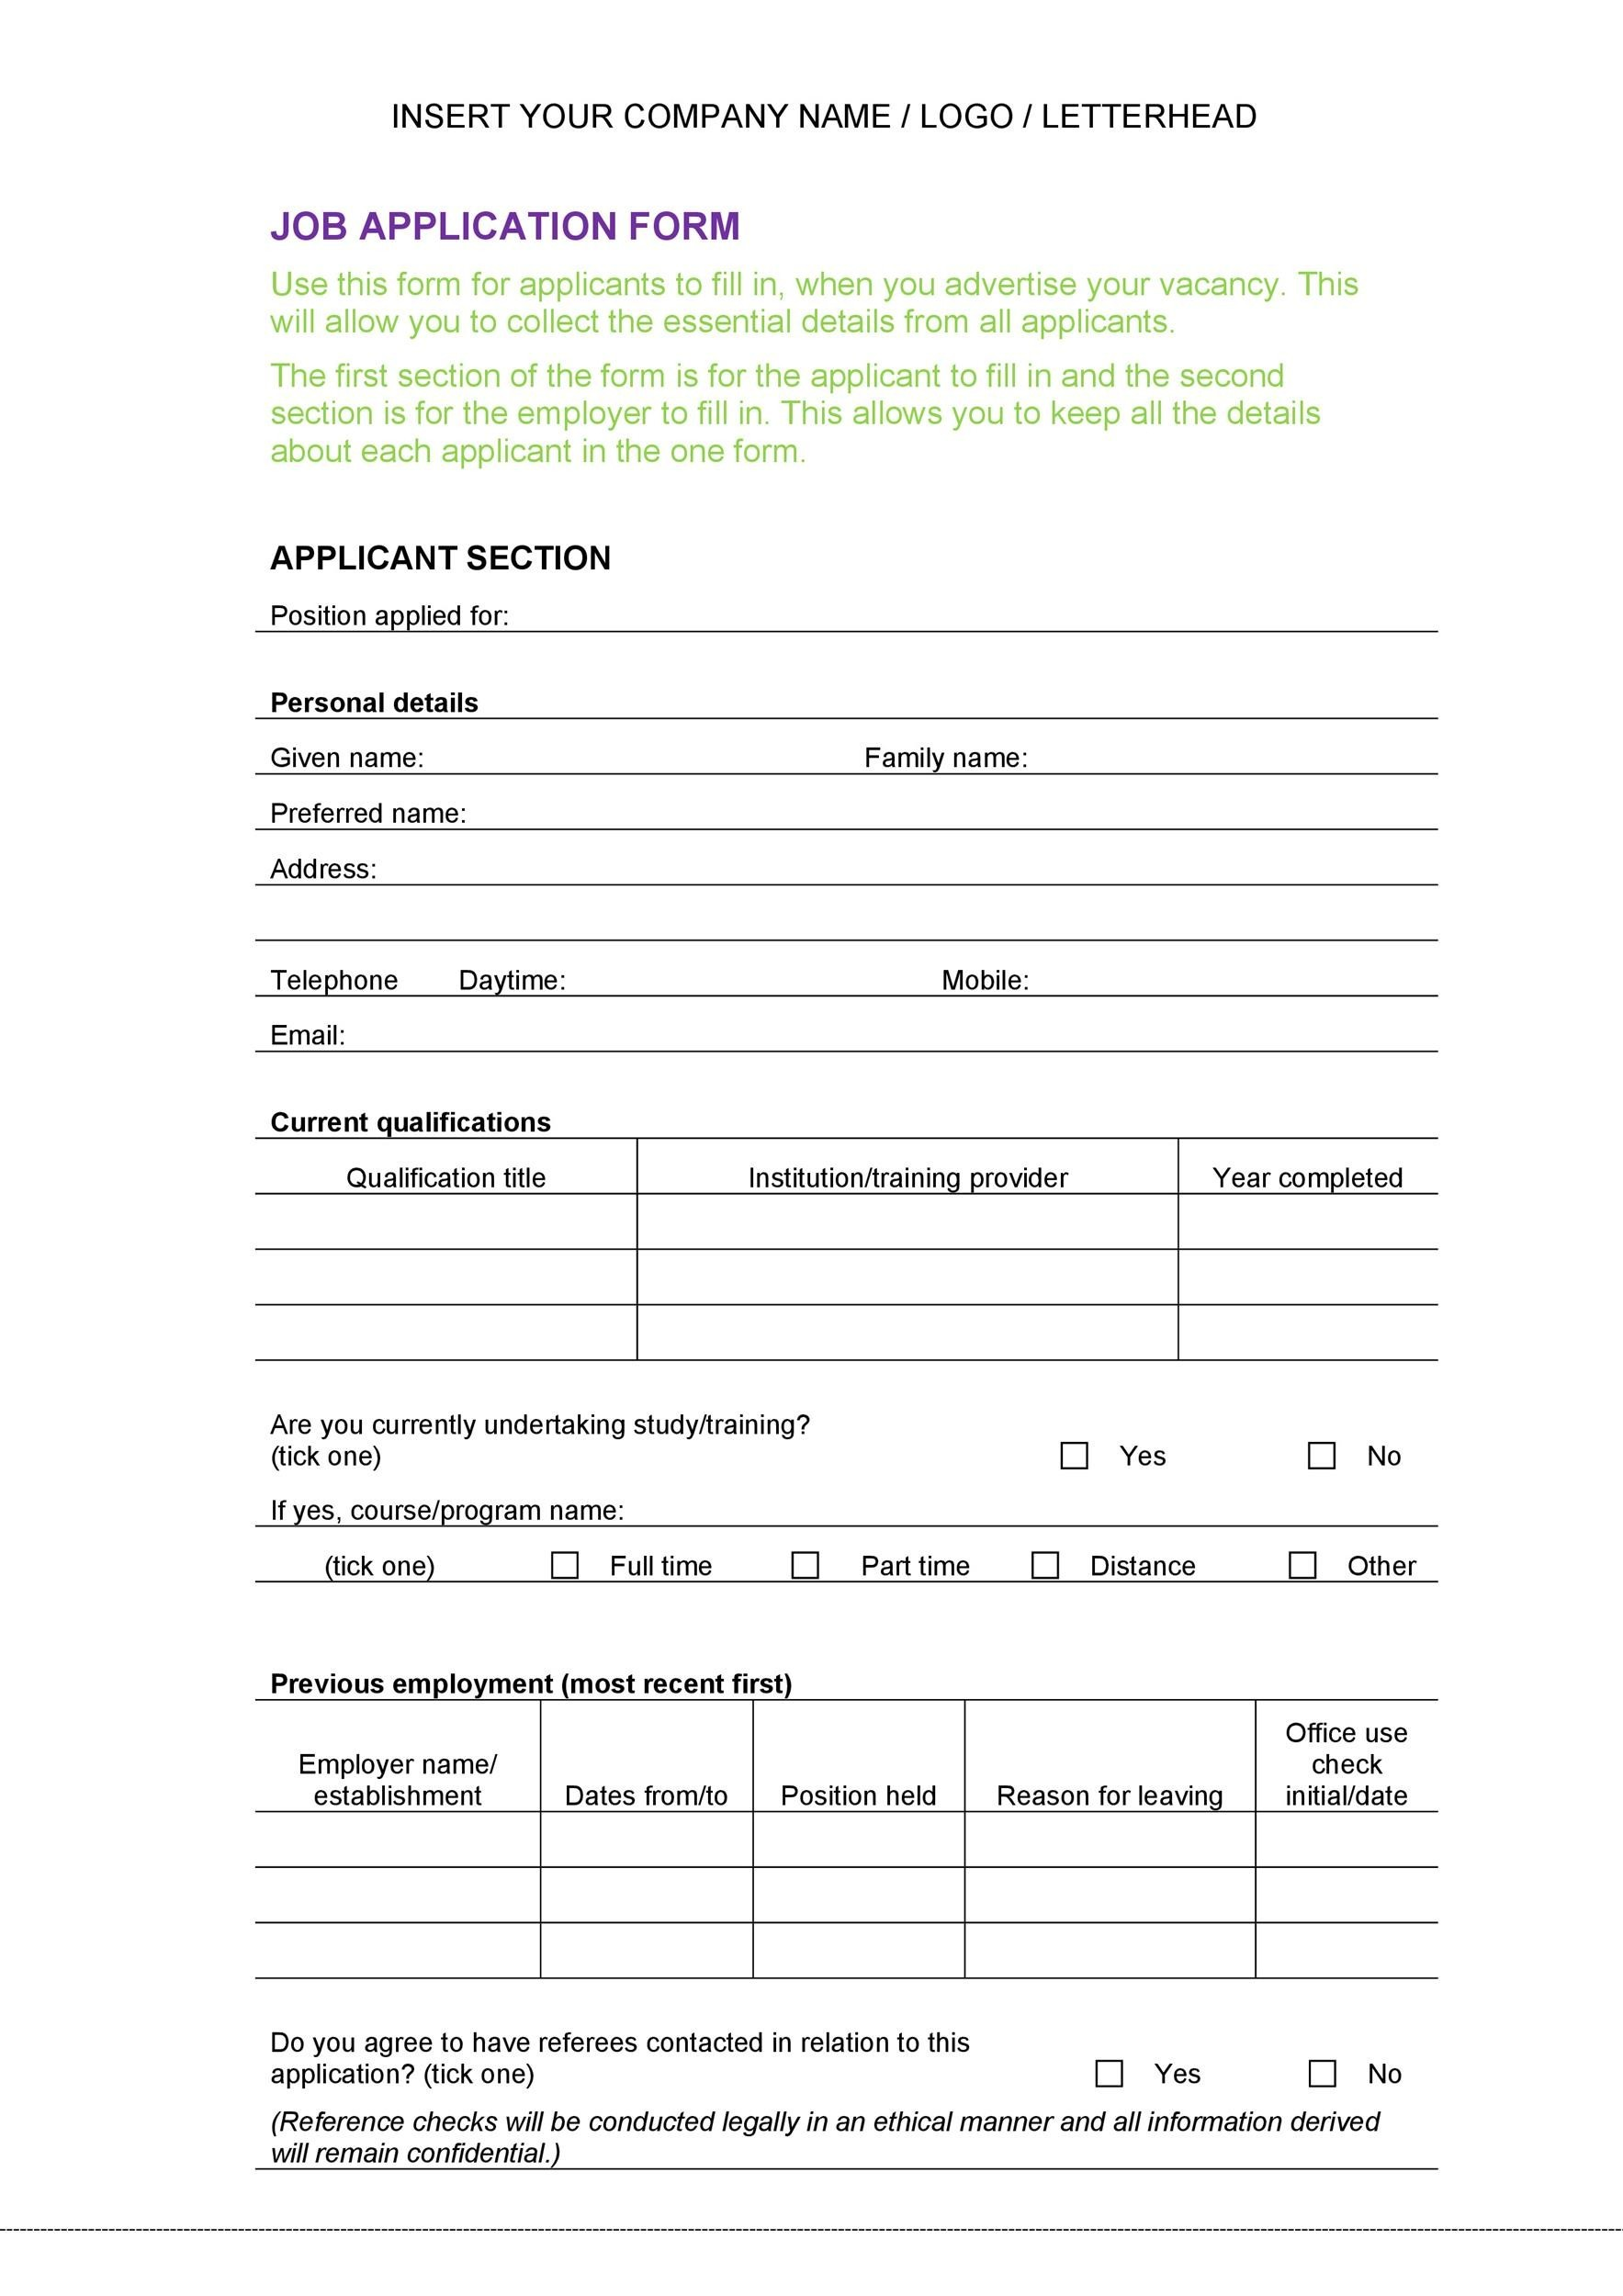 image about Free Printable Employment Application Form named 50 Totally free Work / Endeavor Program Style Templates